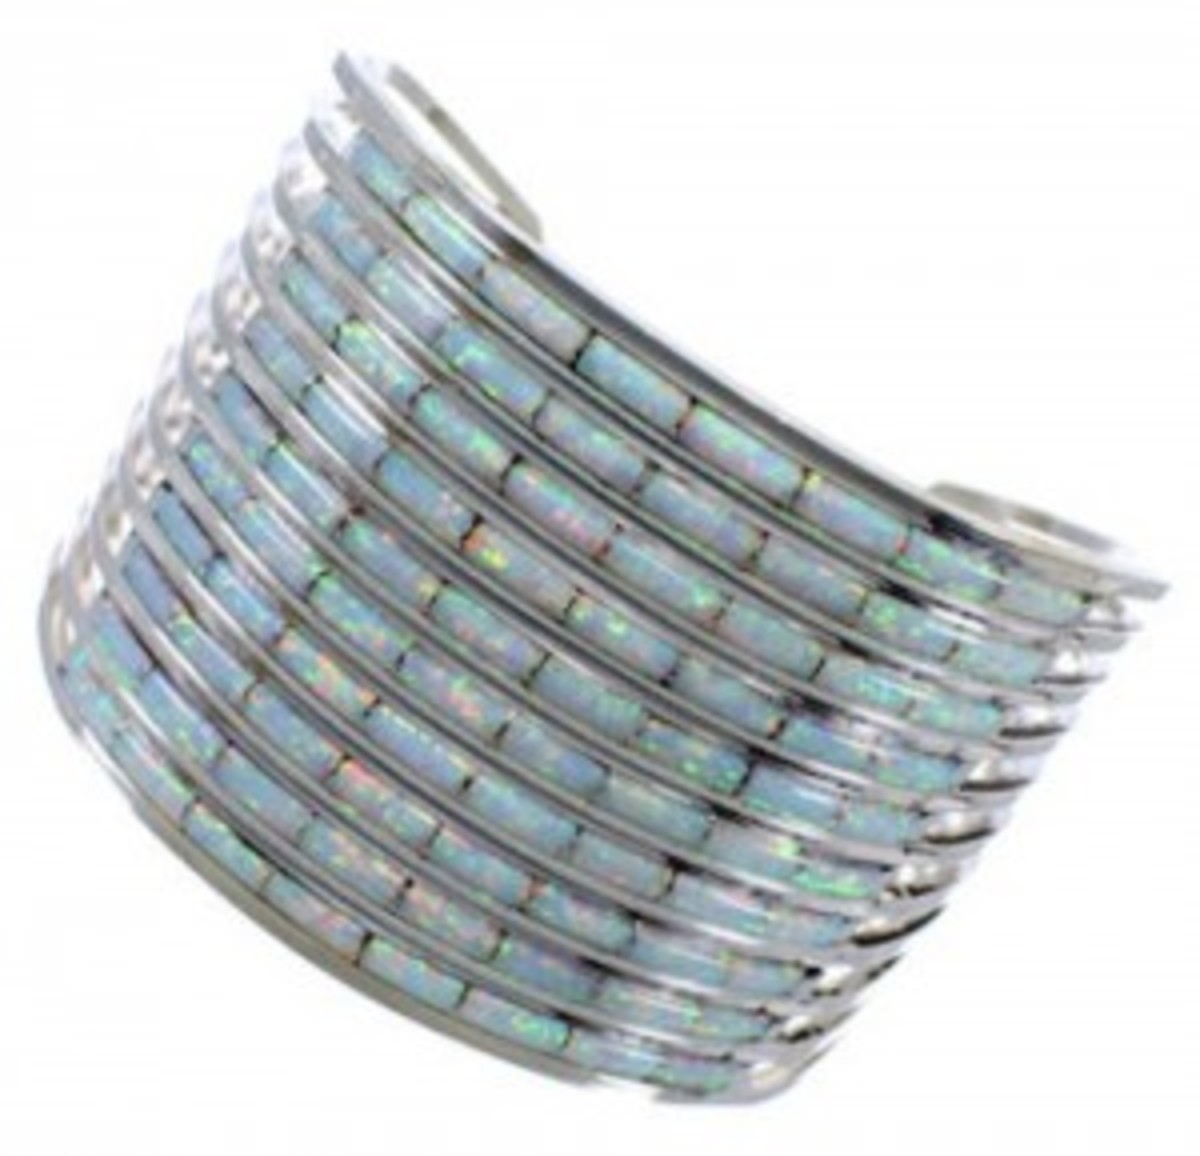 Zuni genuine sterling silver and opal inlay cuff bracelet.